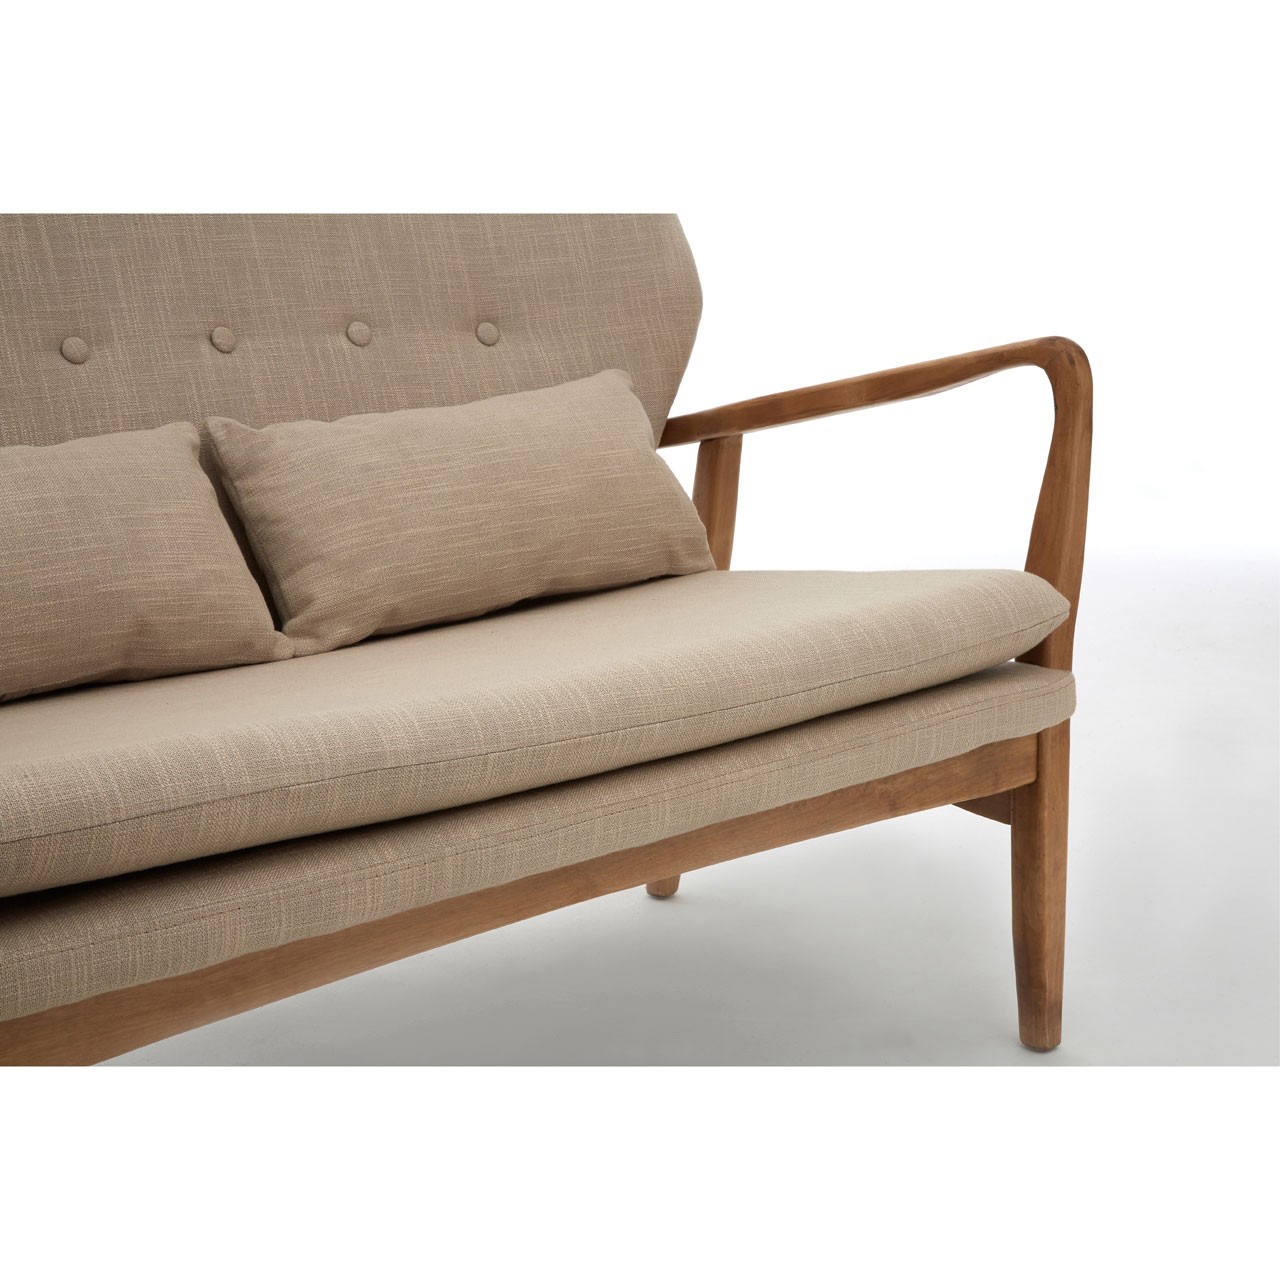 oatmeal sofa pallet table for sale oslo 2 seater scandi style fads co uk